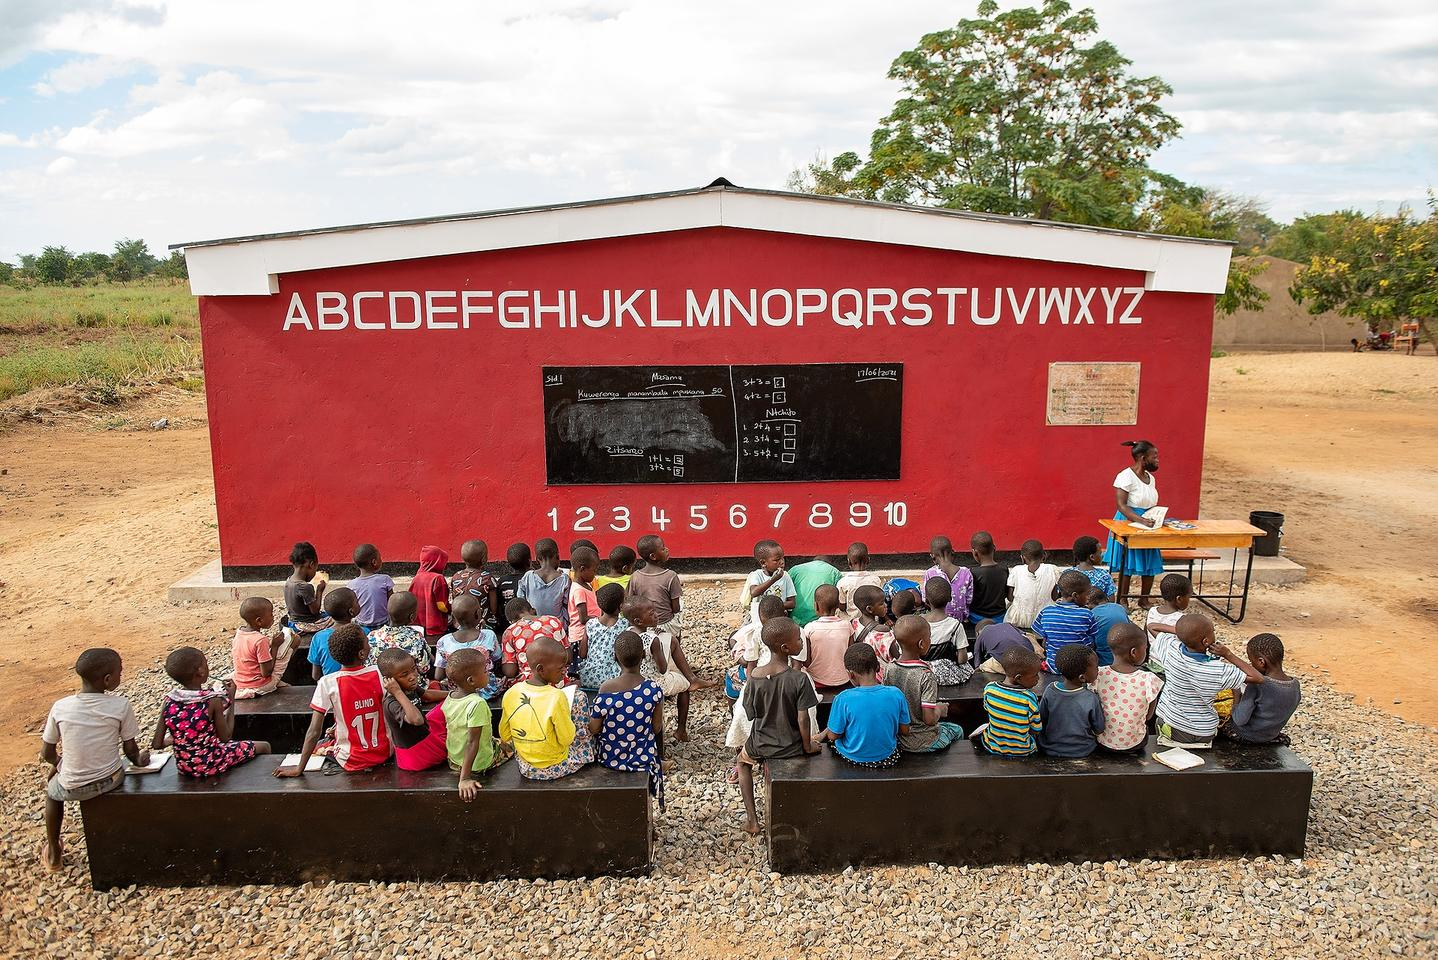 The world's first 3D-printed school is now complete in Malawi